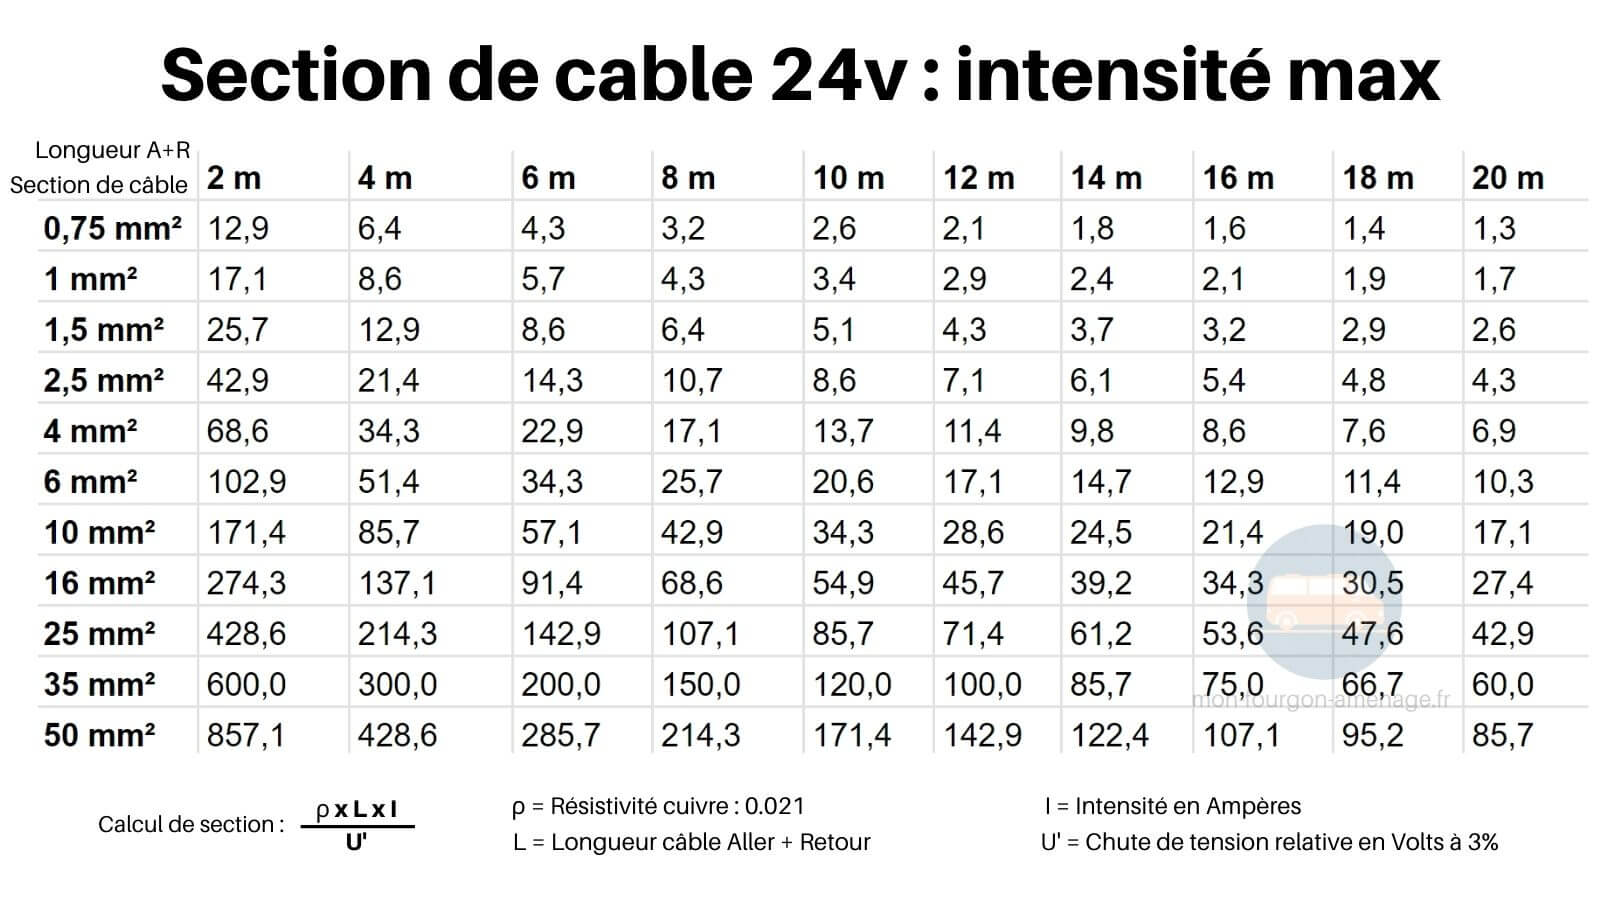 Abaque, section de cable, abaque section cable 24v, section cable 24v intensité, amperes